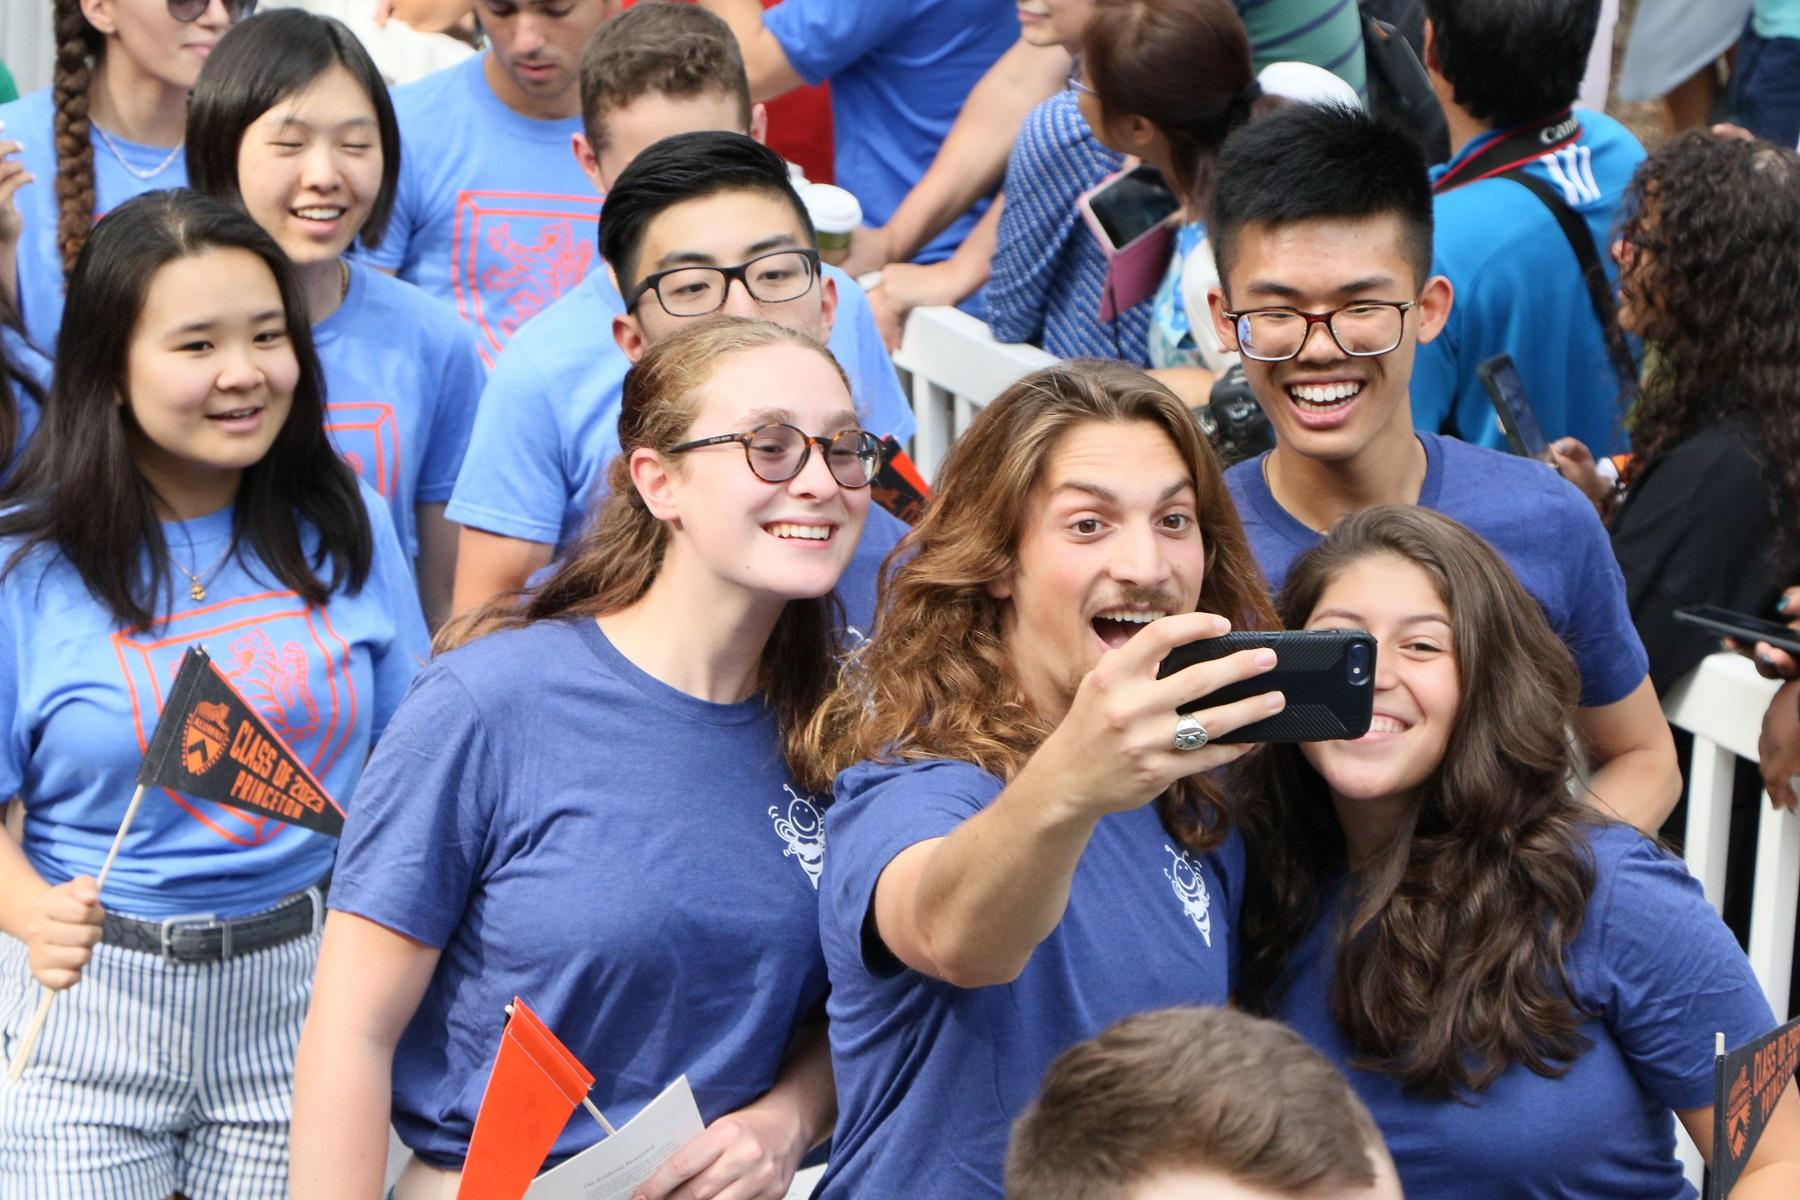 First-year students taking a sefie as they walk the Pre-rade